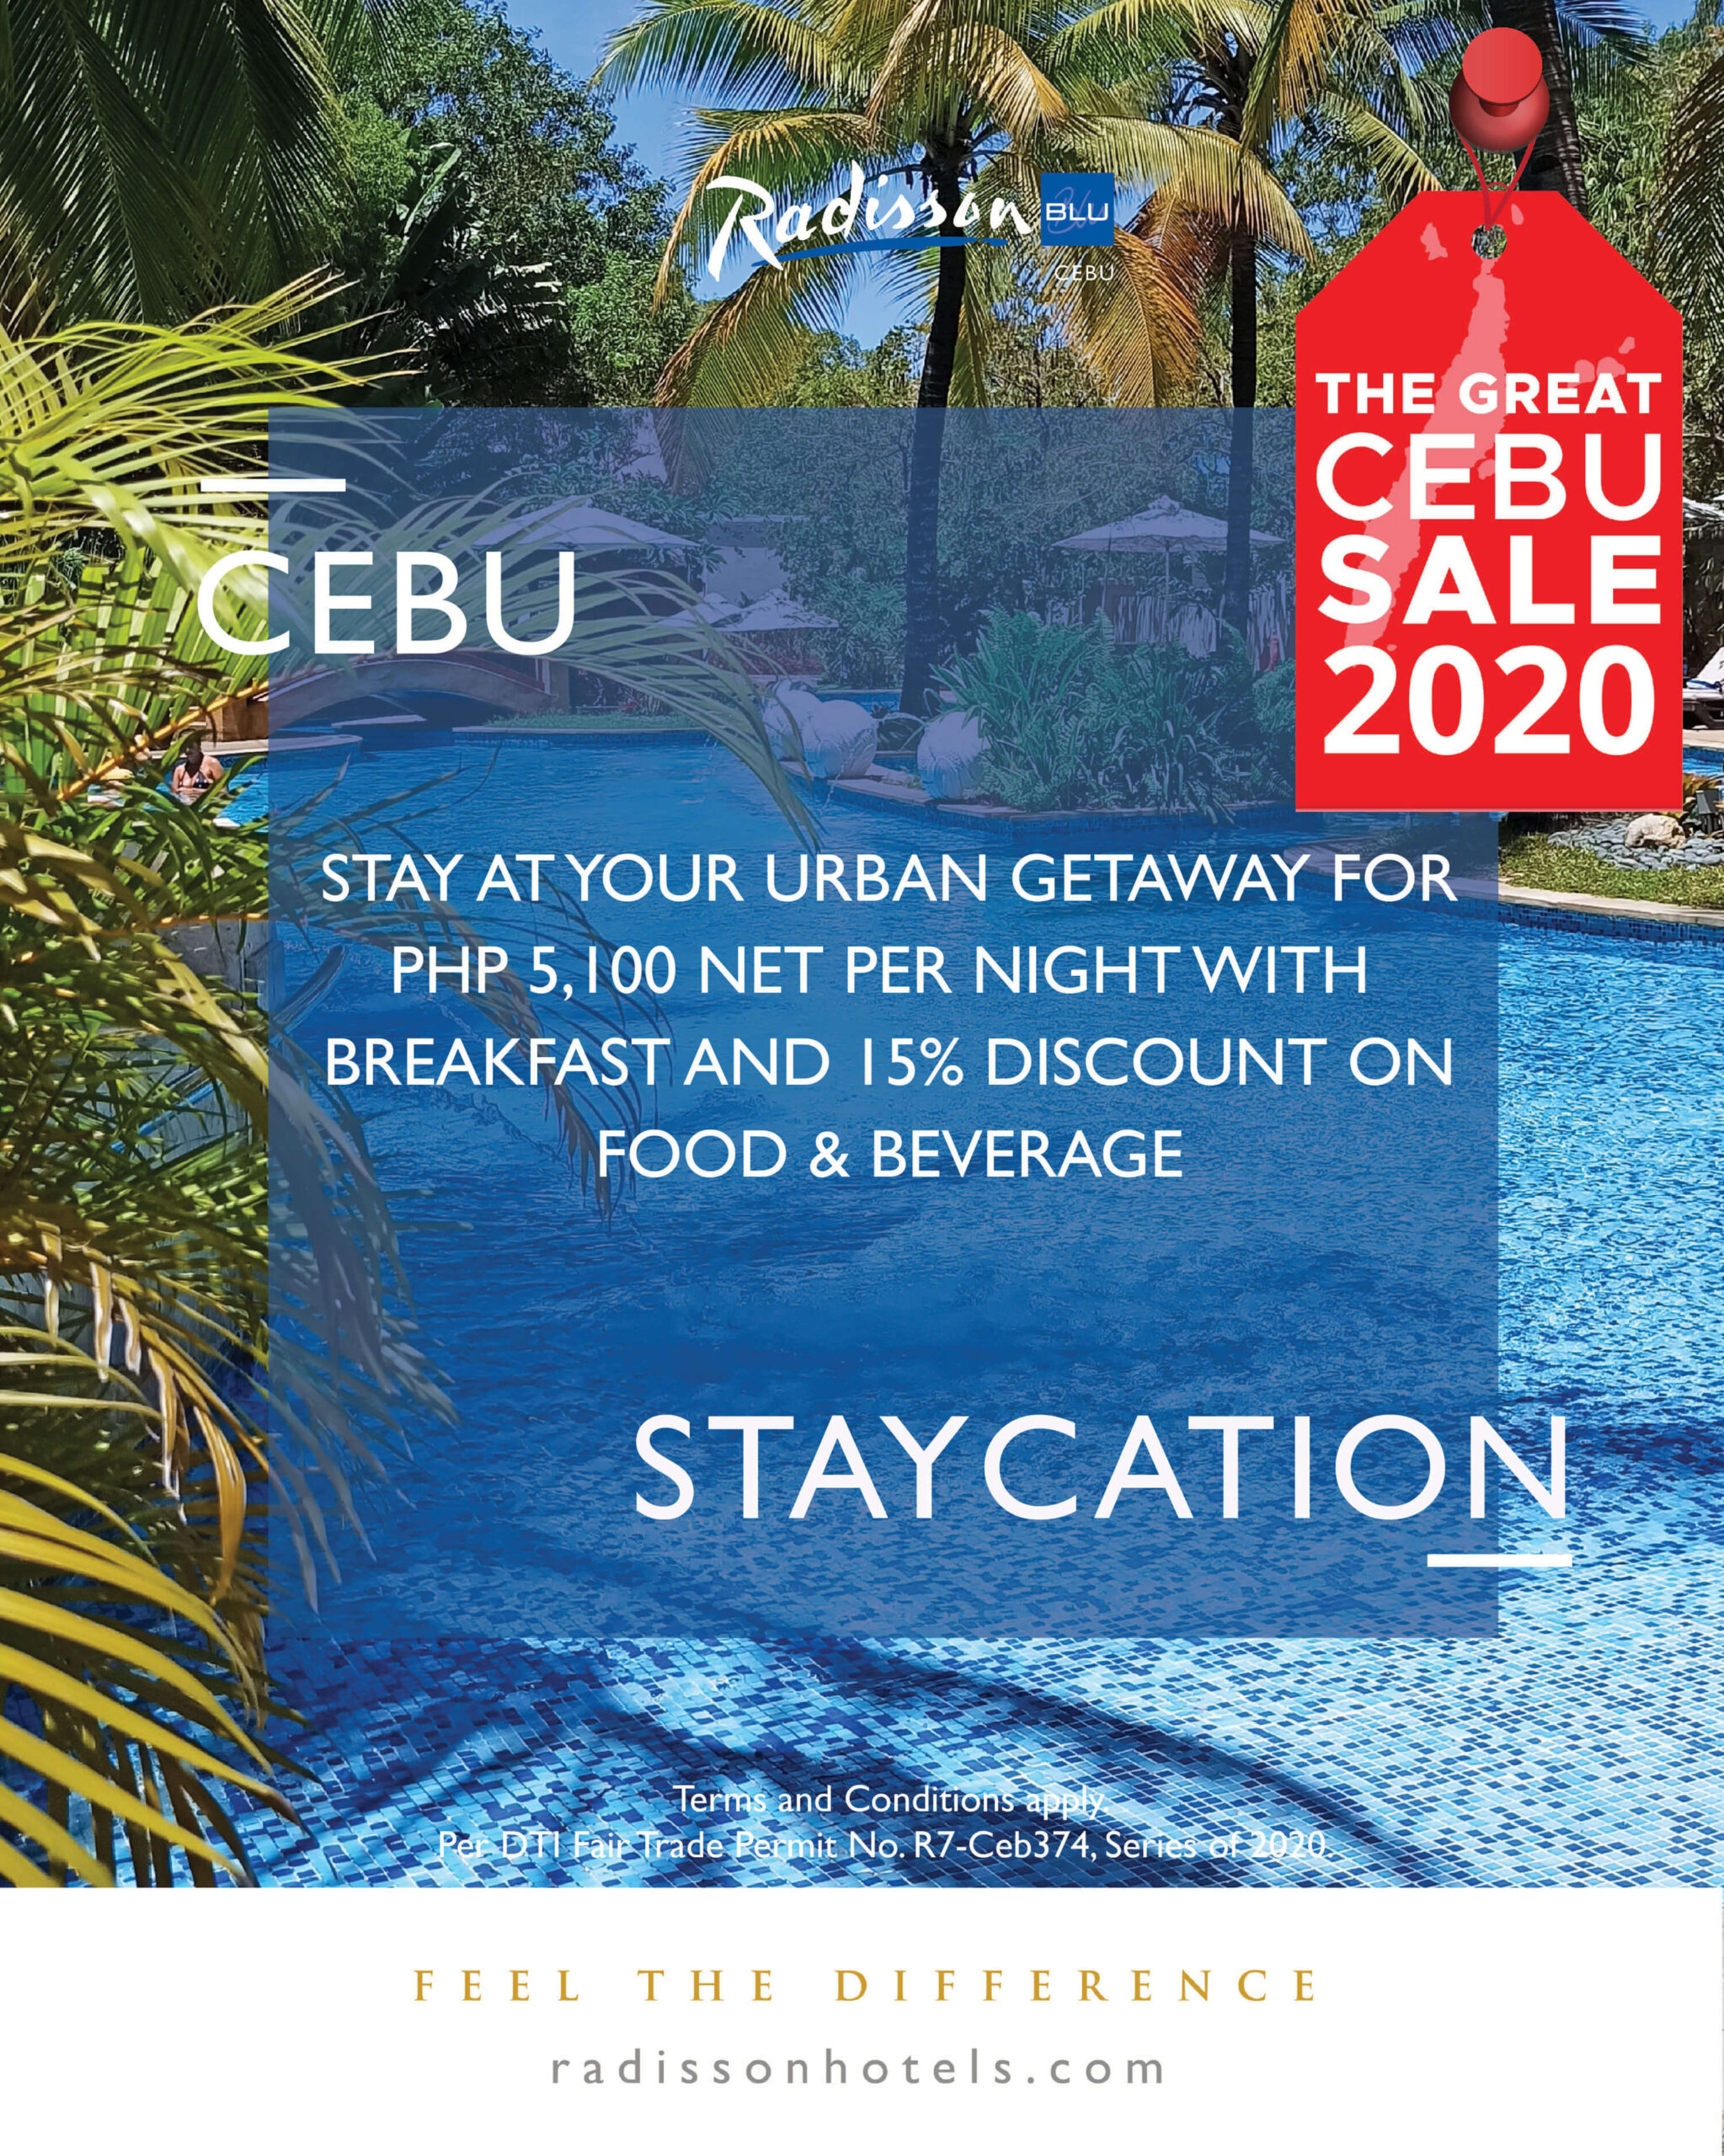 Radisson Blu Cebu offers staycation package, 15% discount on food and beverage, 50% off on essential aromatherapy massage